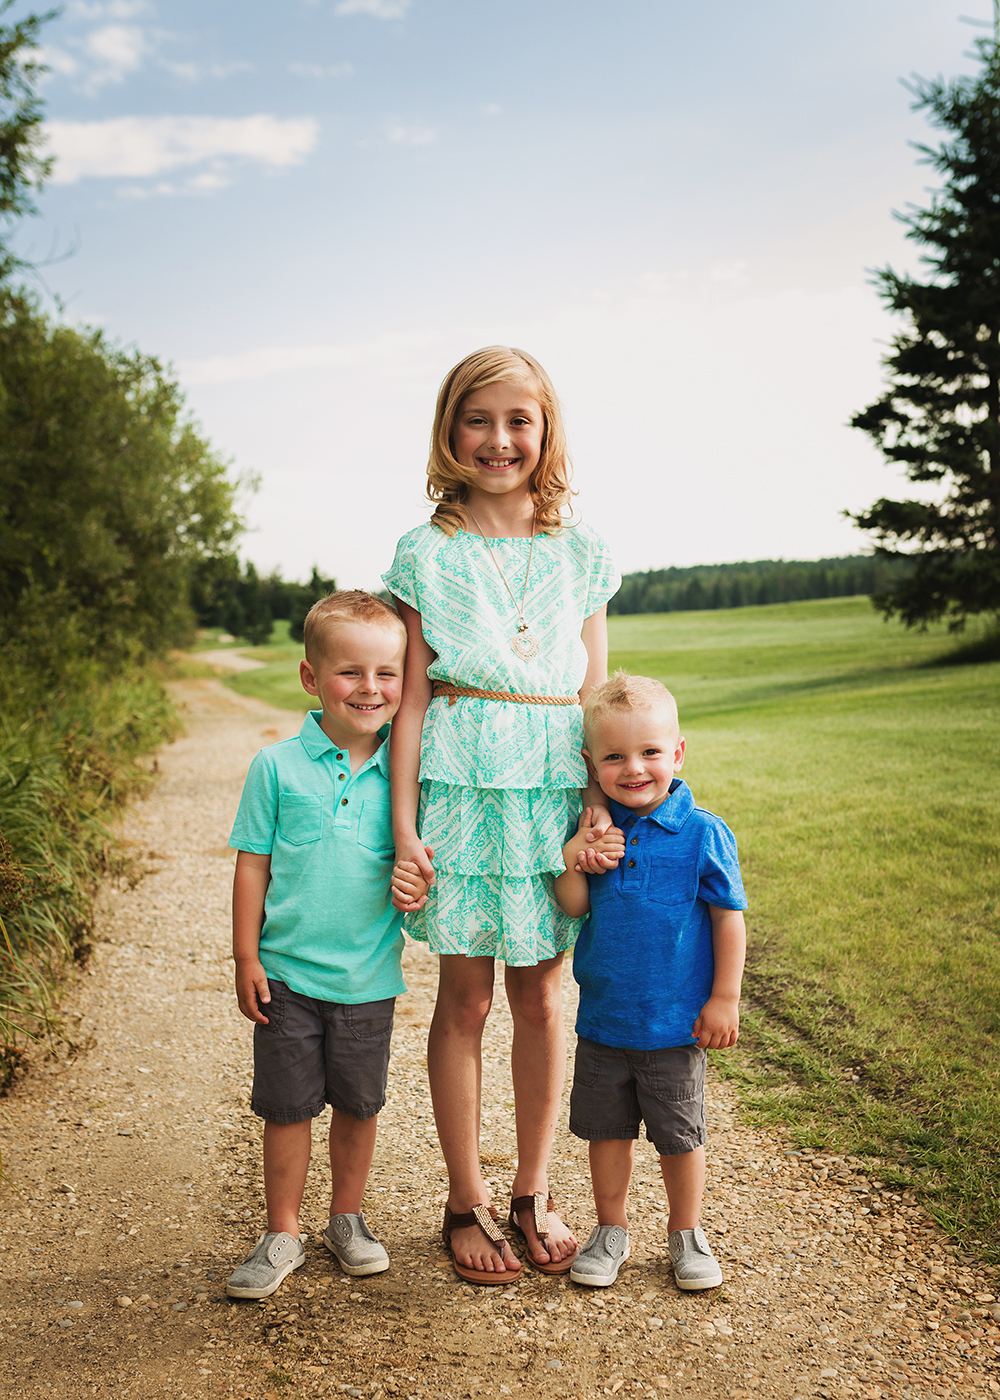 Edmonton Family Photographer_Tebb Family Sneak Peek 3.jpg